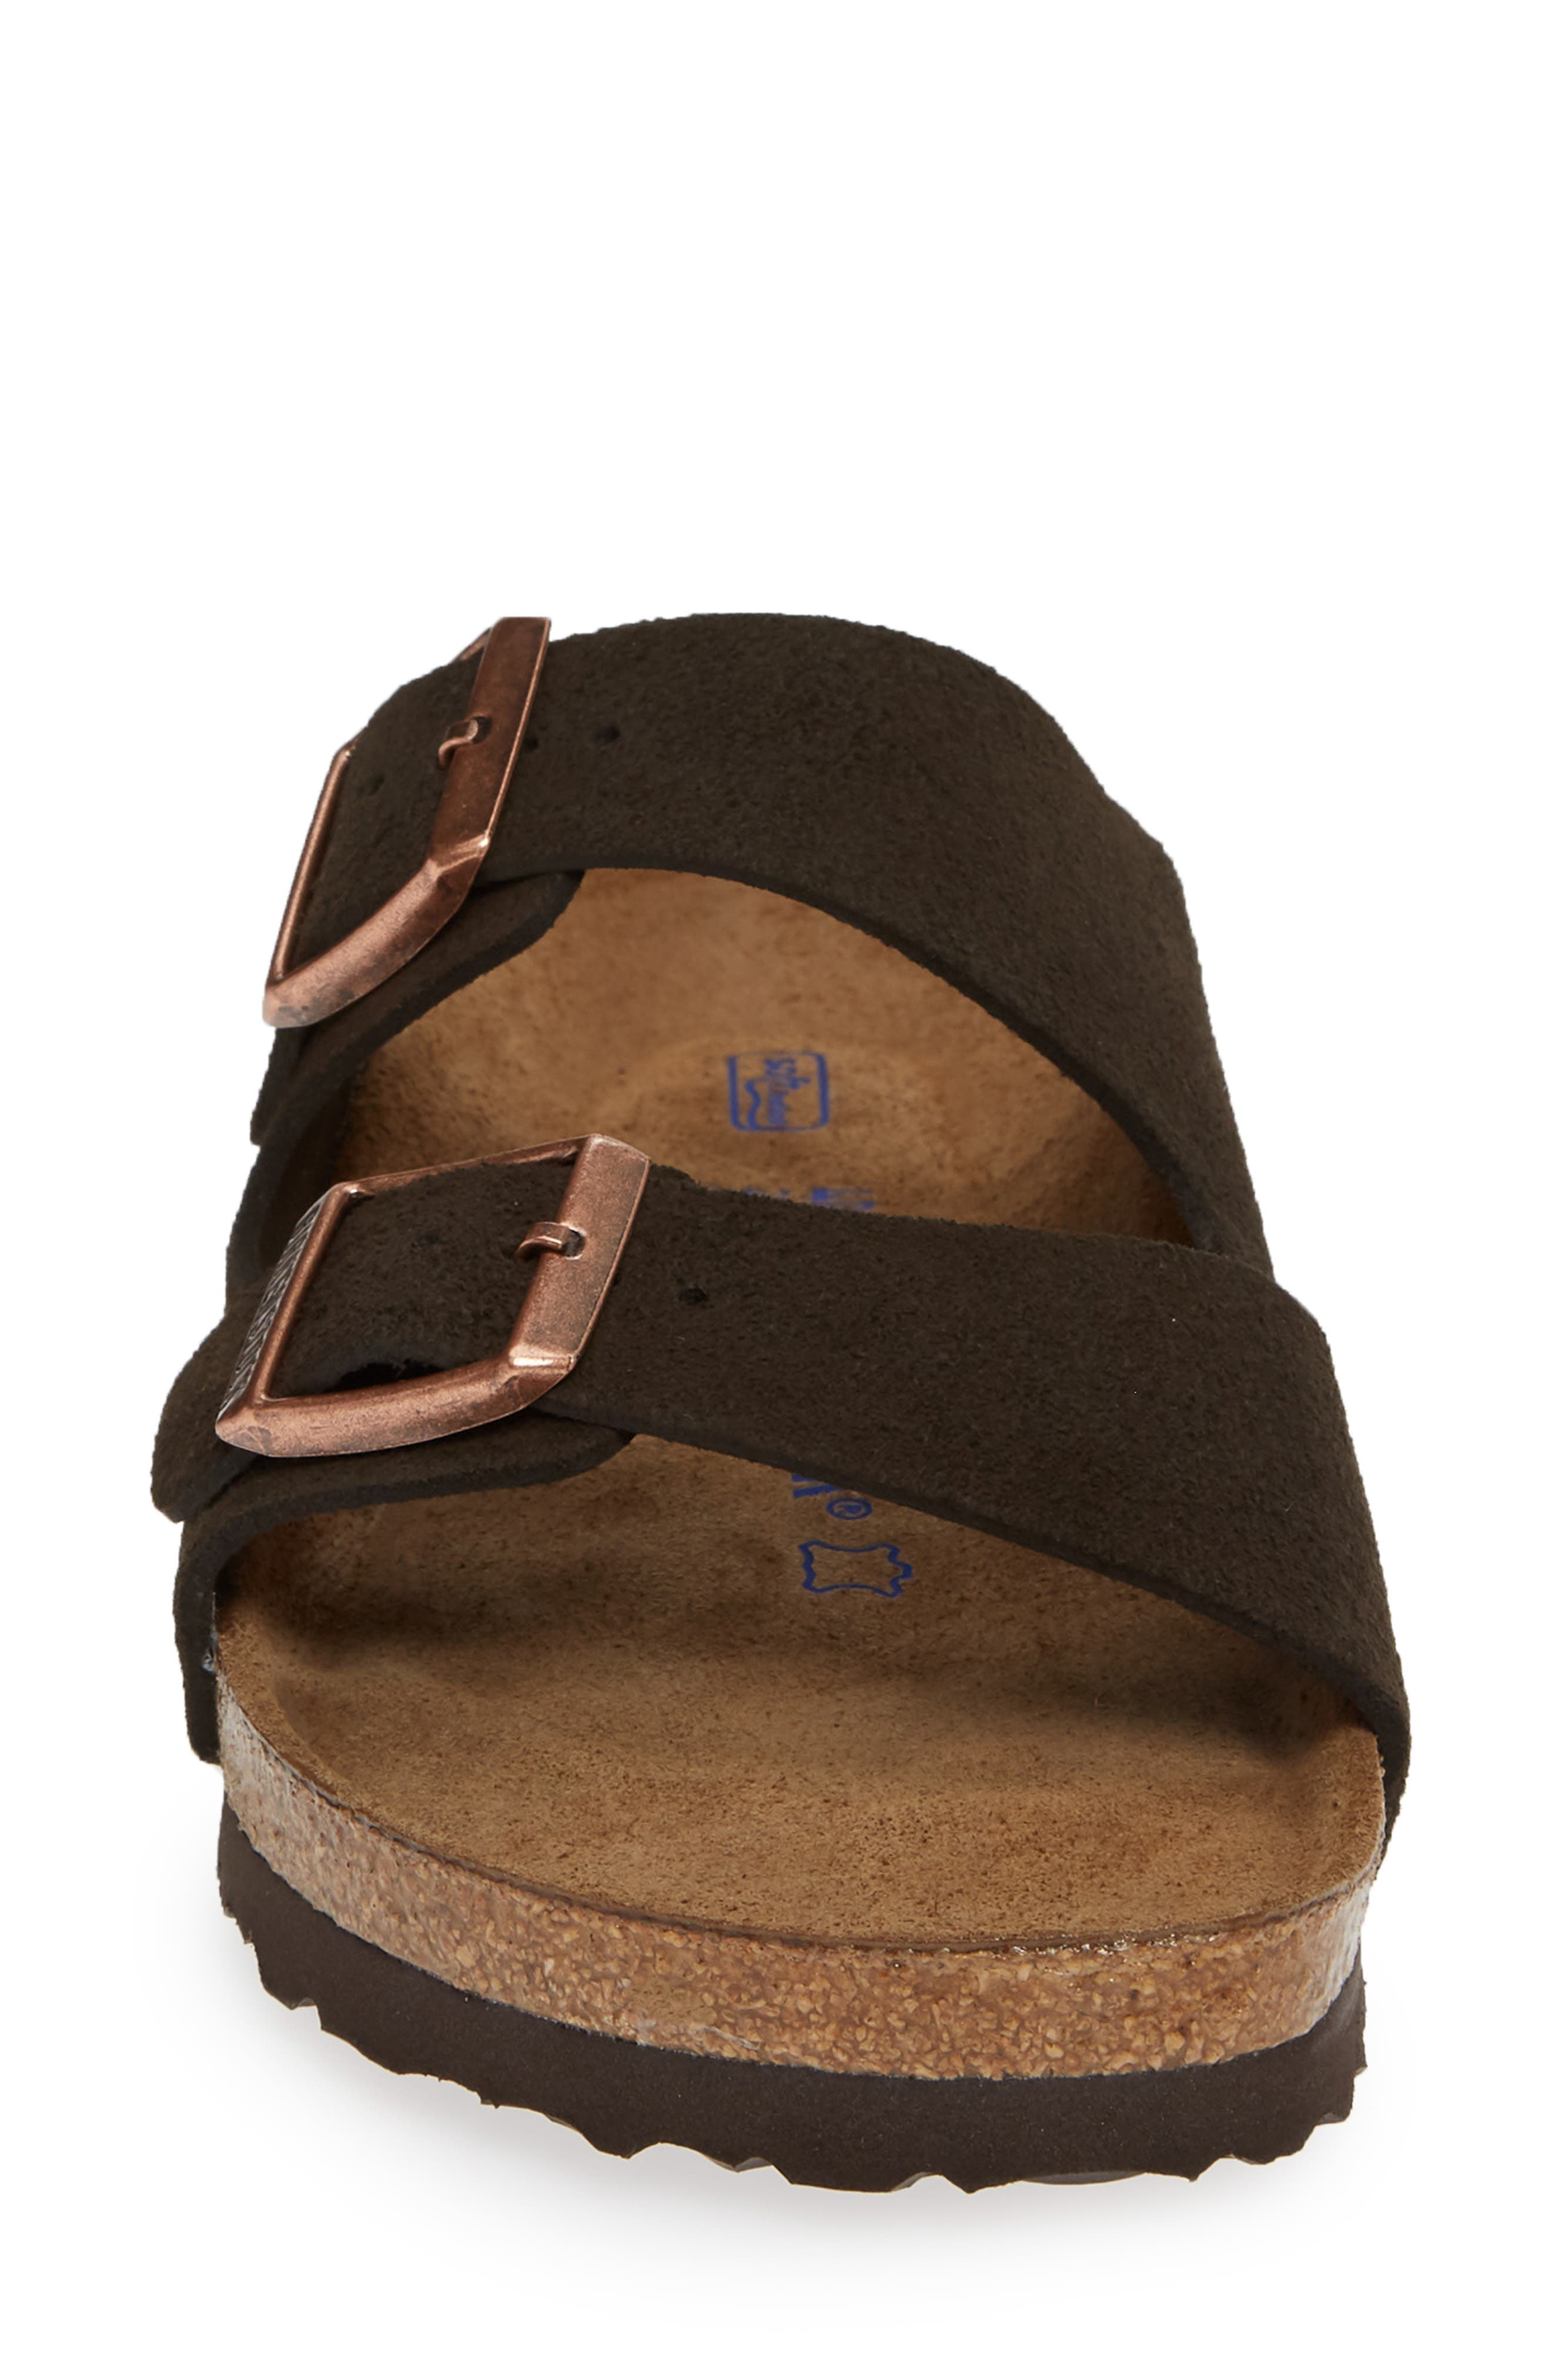 'Arizona' Soft Footbed Suede Sandal,                             Alternate thumbnail 4, color,                             MOCHA SUEDE